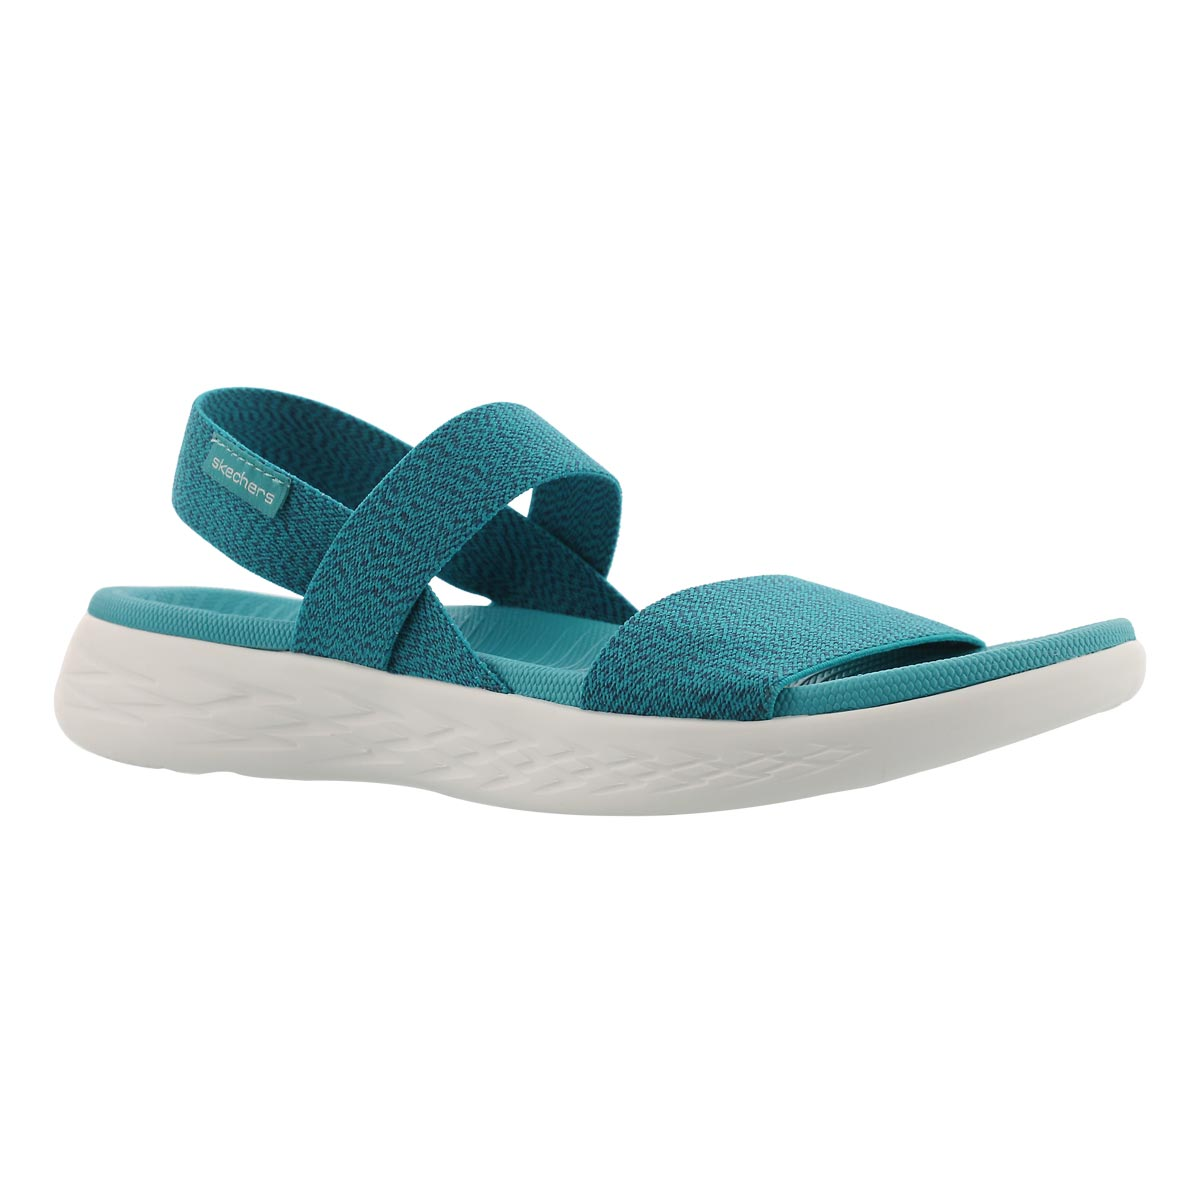 Women's ON THE GO 600 IDEAL tur sport sandals